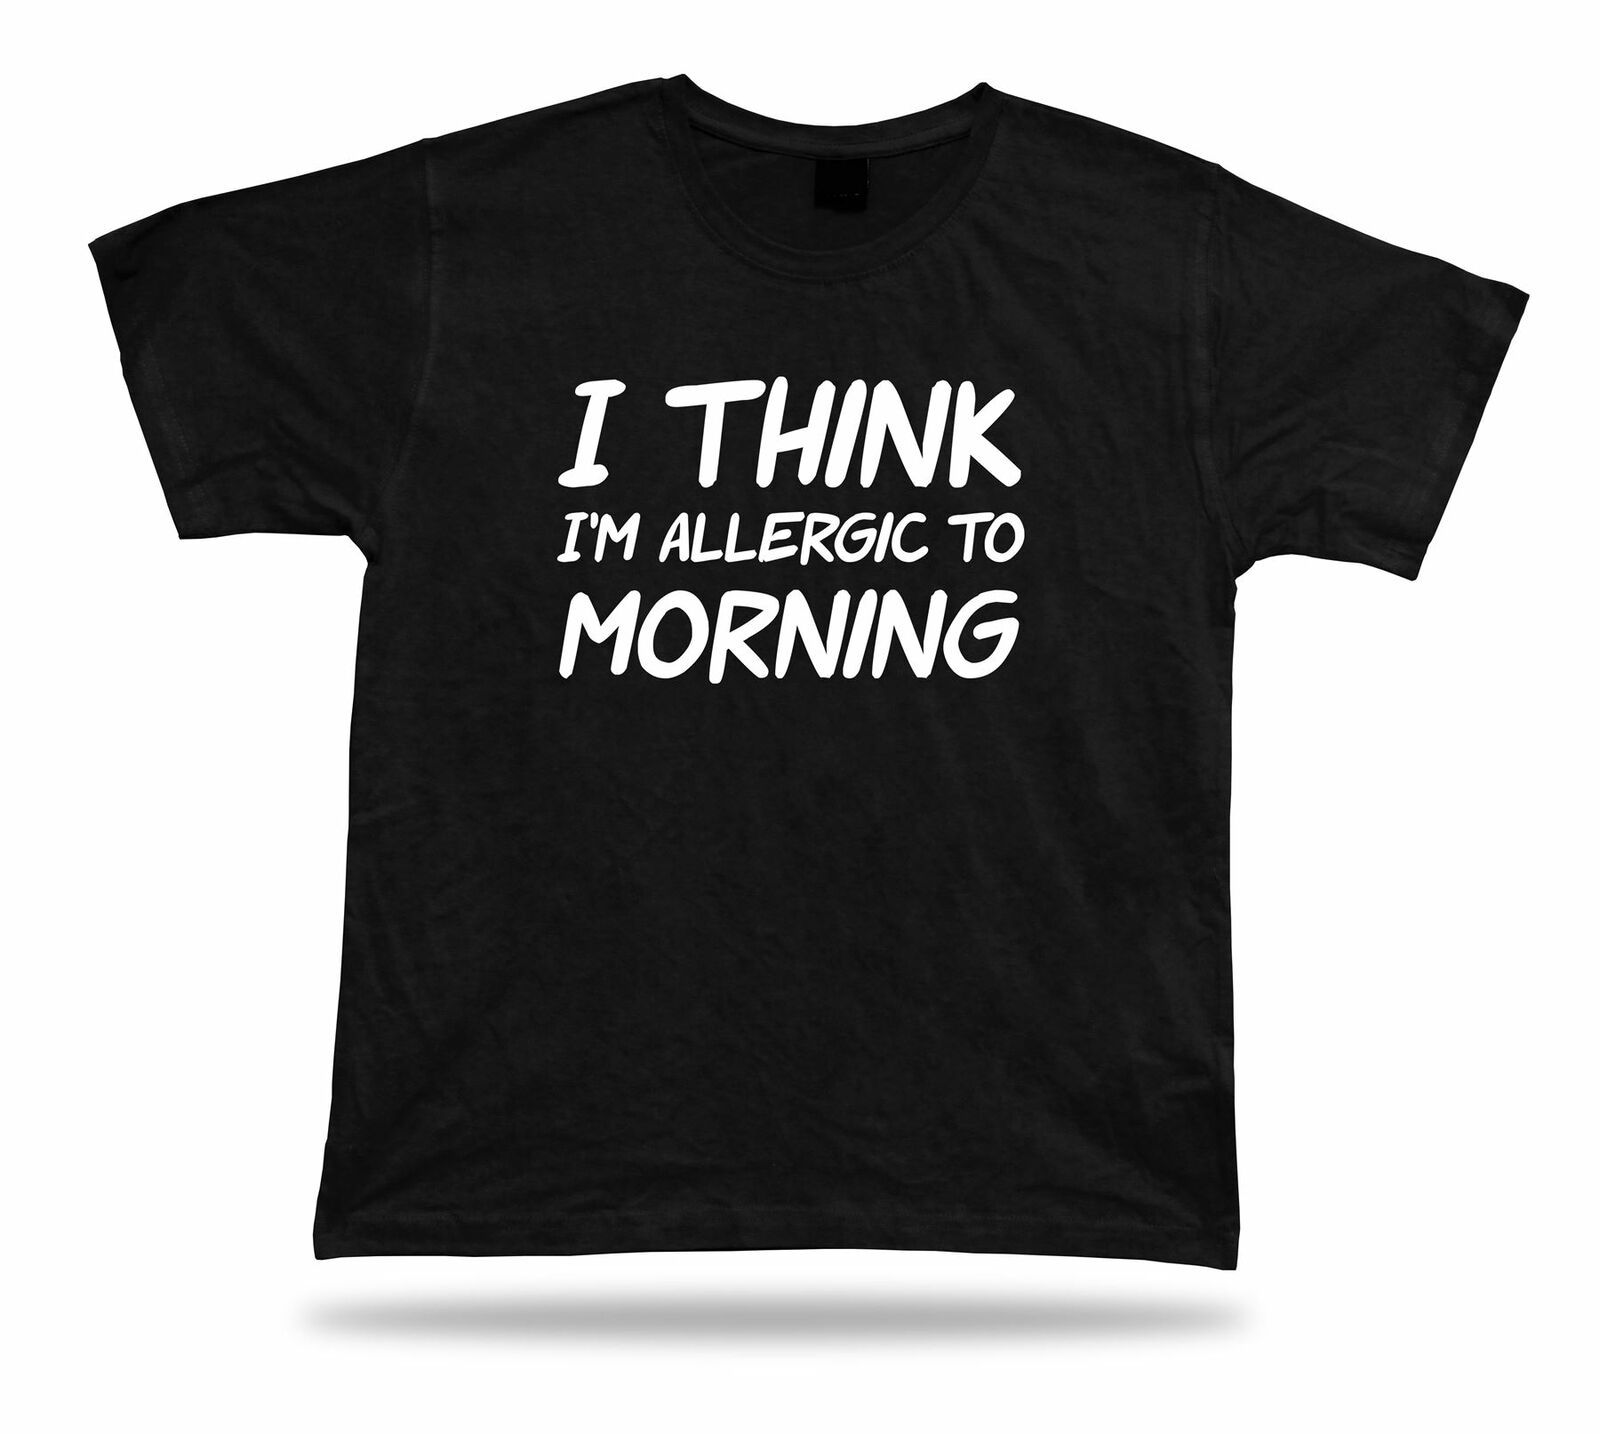 Primary image for T shirt Shirt Birthday Gift Idea Funny Quote Allergic to Morning Sleep TiBlack